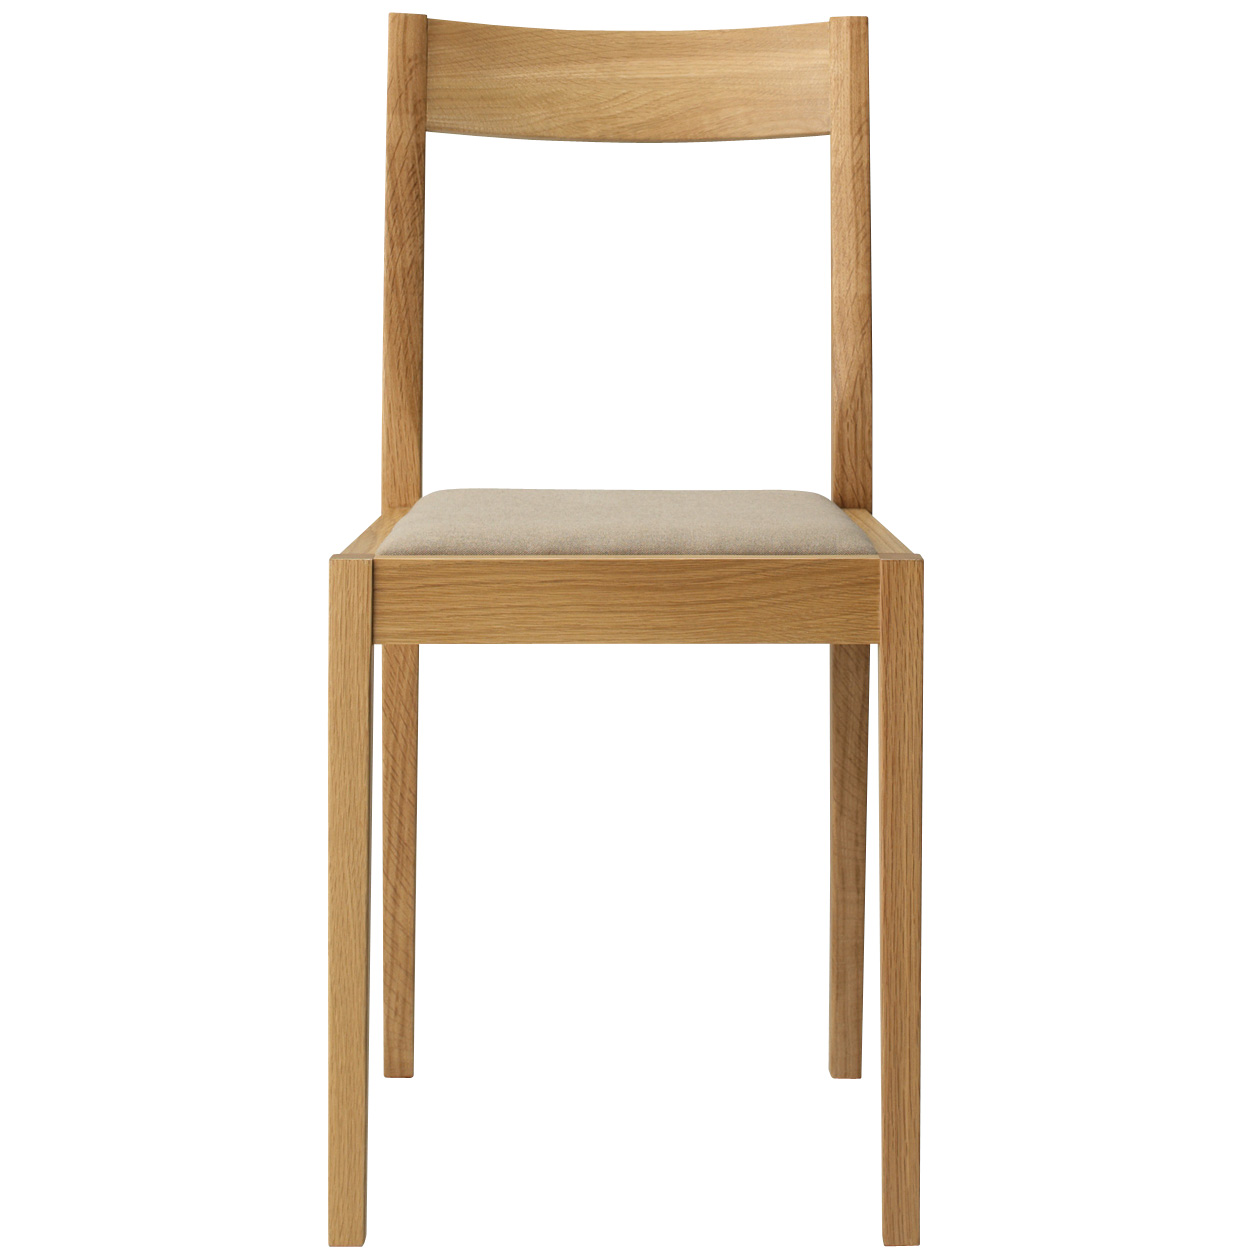 OAK / CUSHIONED SEAT / CHAIR / BE